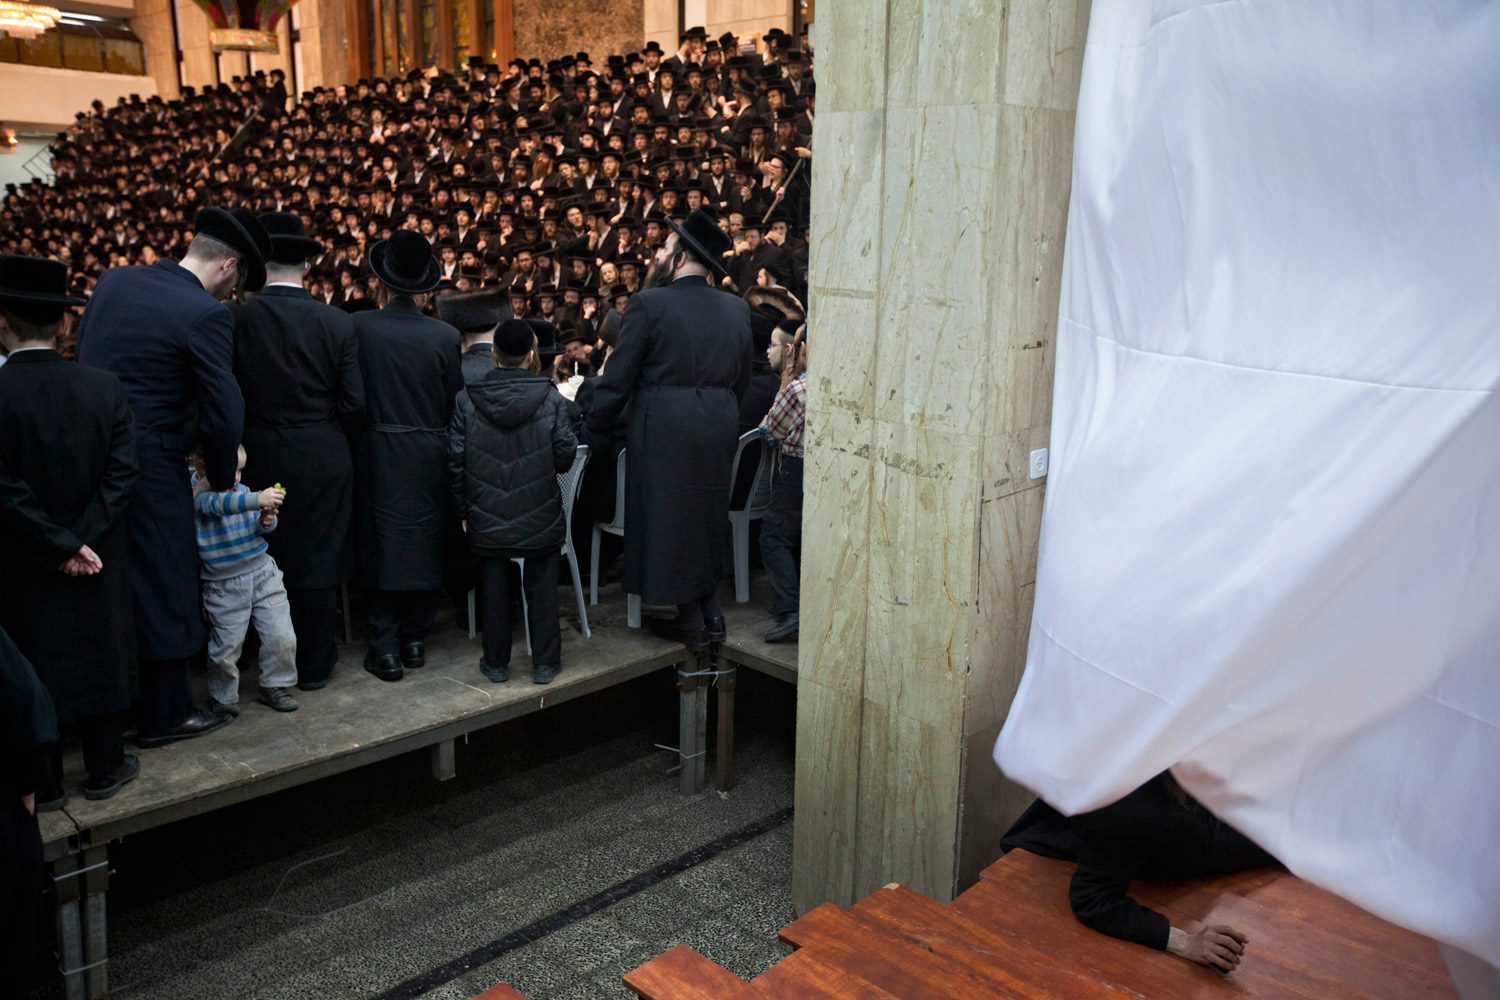 Feb. 8, 2012. Ultra-Orthodox Jews of the Wiznitz Hasidim celebrate the Jewish feast of 'Tu Bishvat' or Tree New Year as they sit with their rabbis around a long table filled with all kinds of fruits, in the ultra-Orthodox town of Bnei Brak near Tel Aviv.